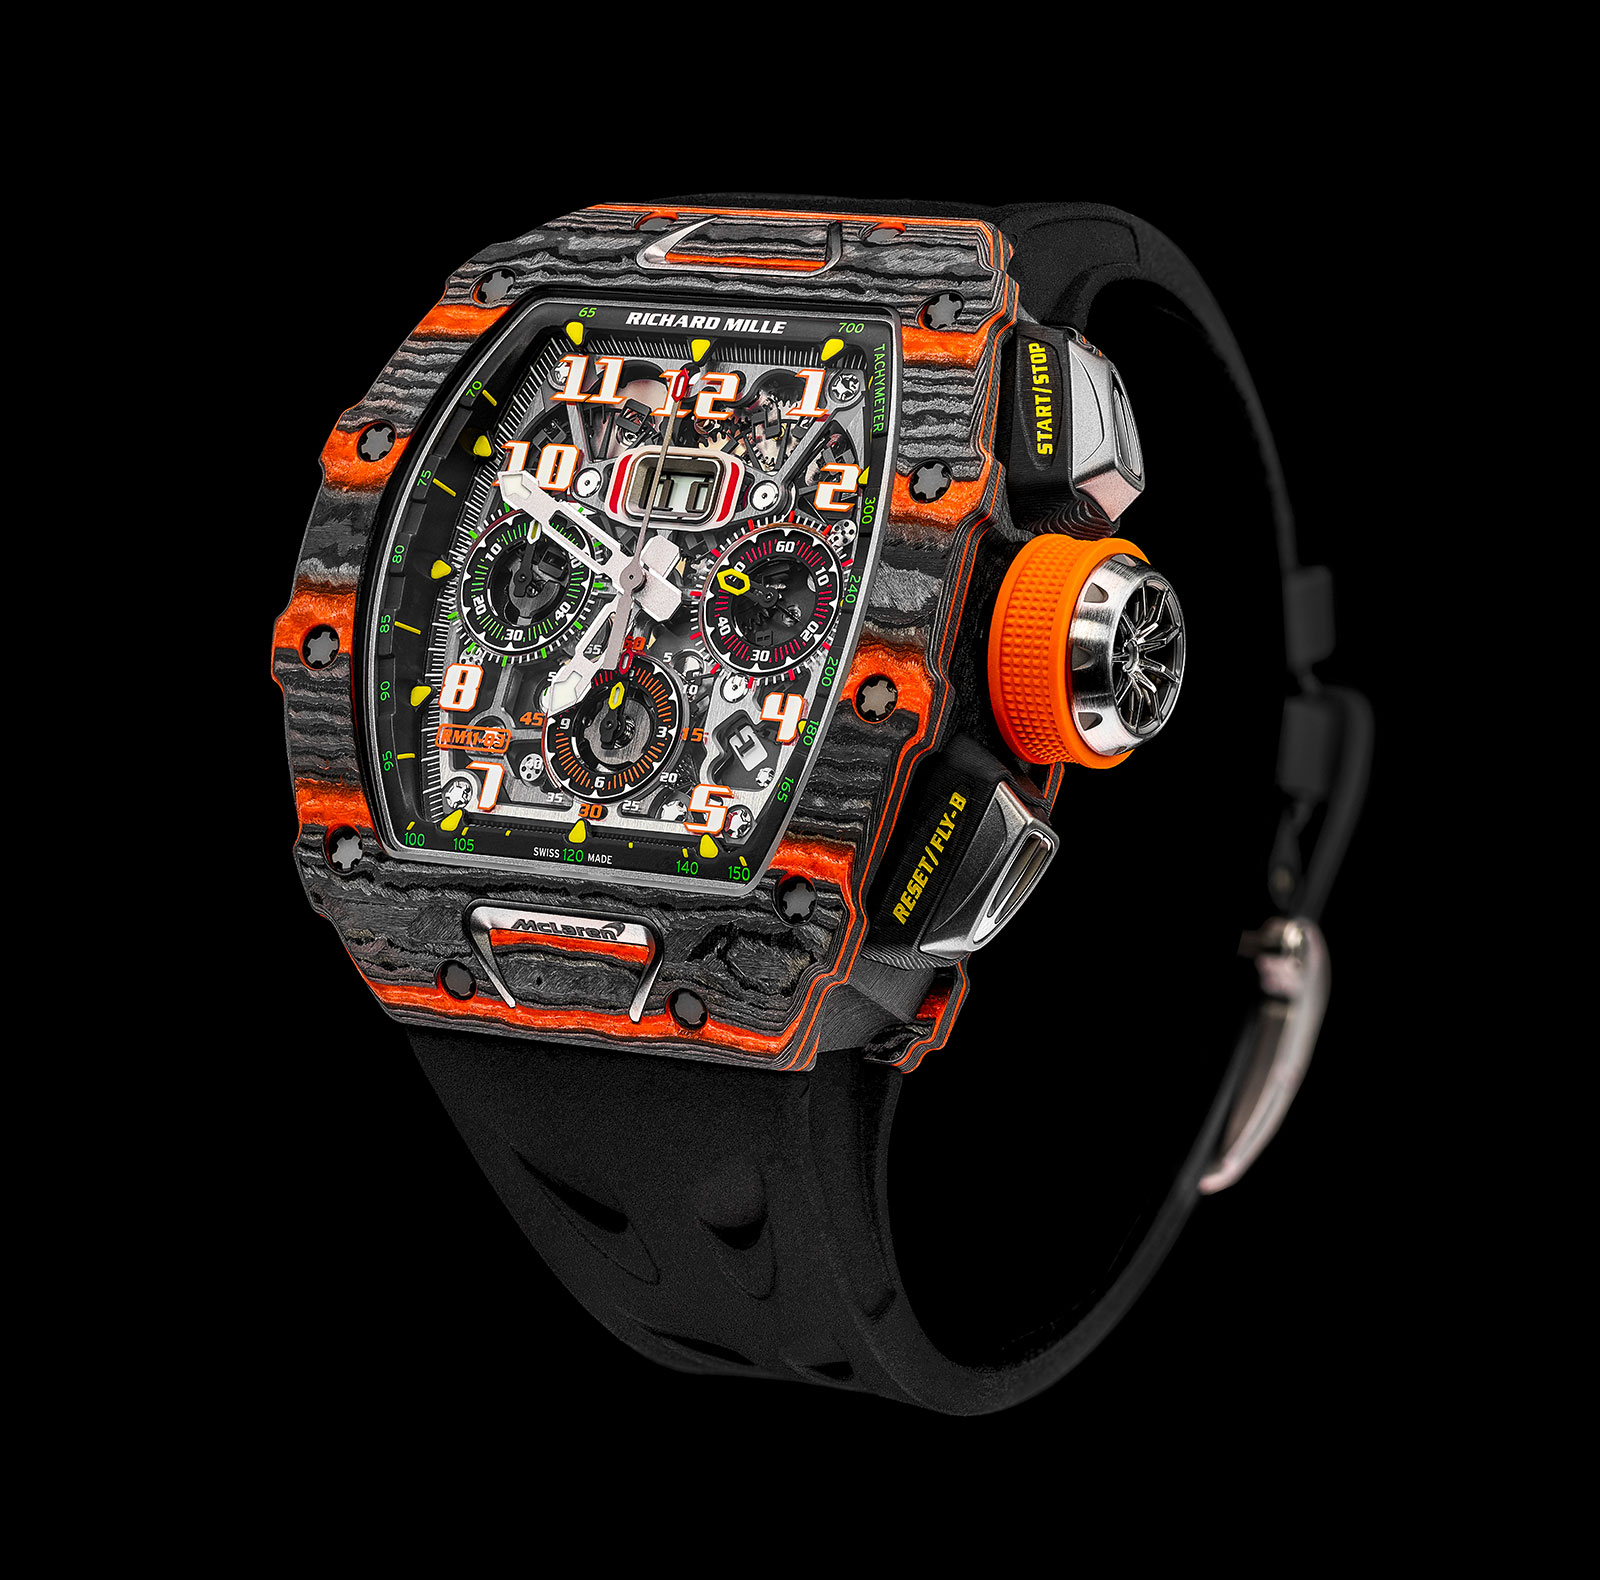 Introducing the Richard Mille RM 11-03 McLaren Chronograph ...